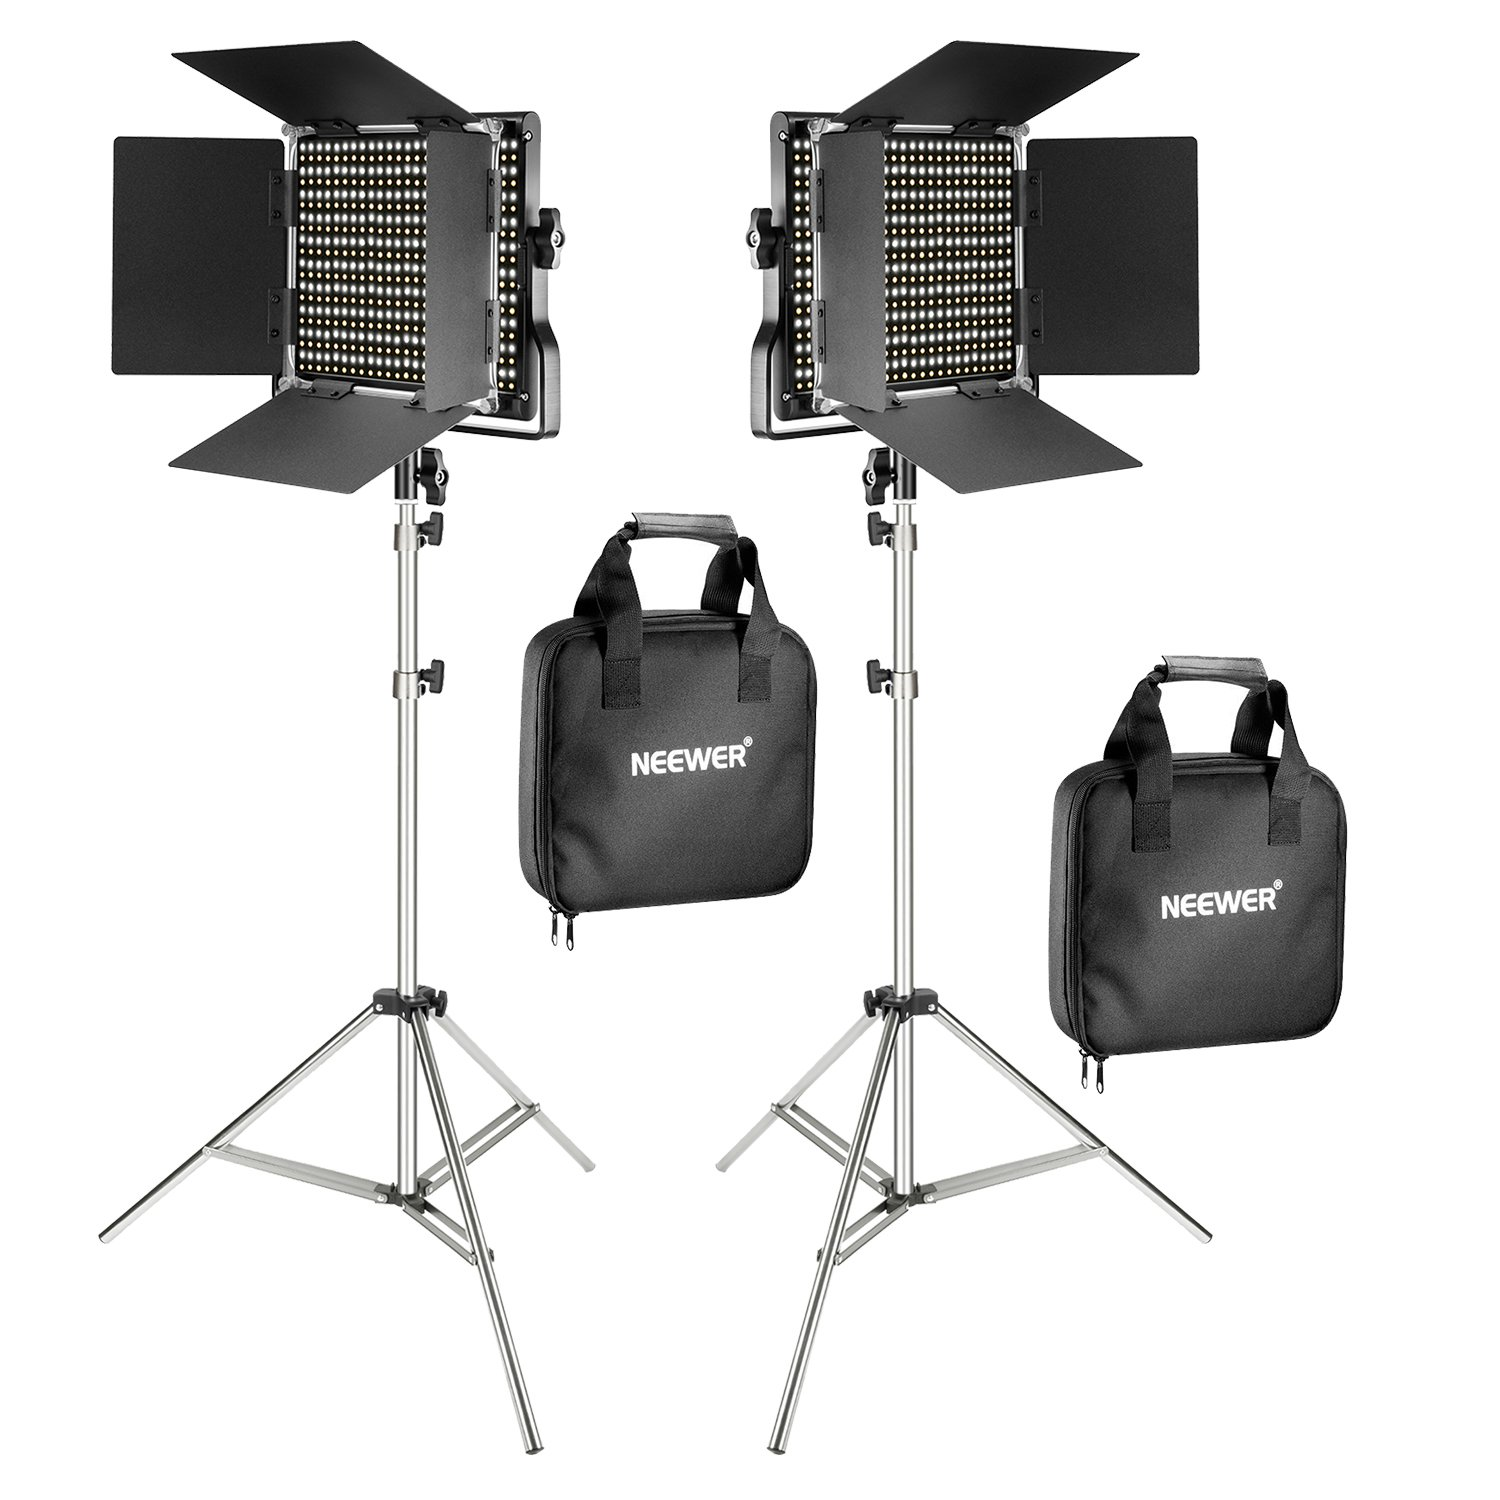 Neewer 2-Pack 660 LED Video Light with 78.7-inch Stainless Steel Light Stand Kit: Dimmable Bi-color LED Panel with U Bracket, Barndoor(3200-5600K,CRI 96+) for Studio Portrait,YouTube Video Photography by Neewer